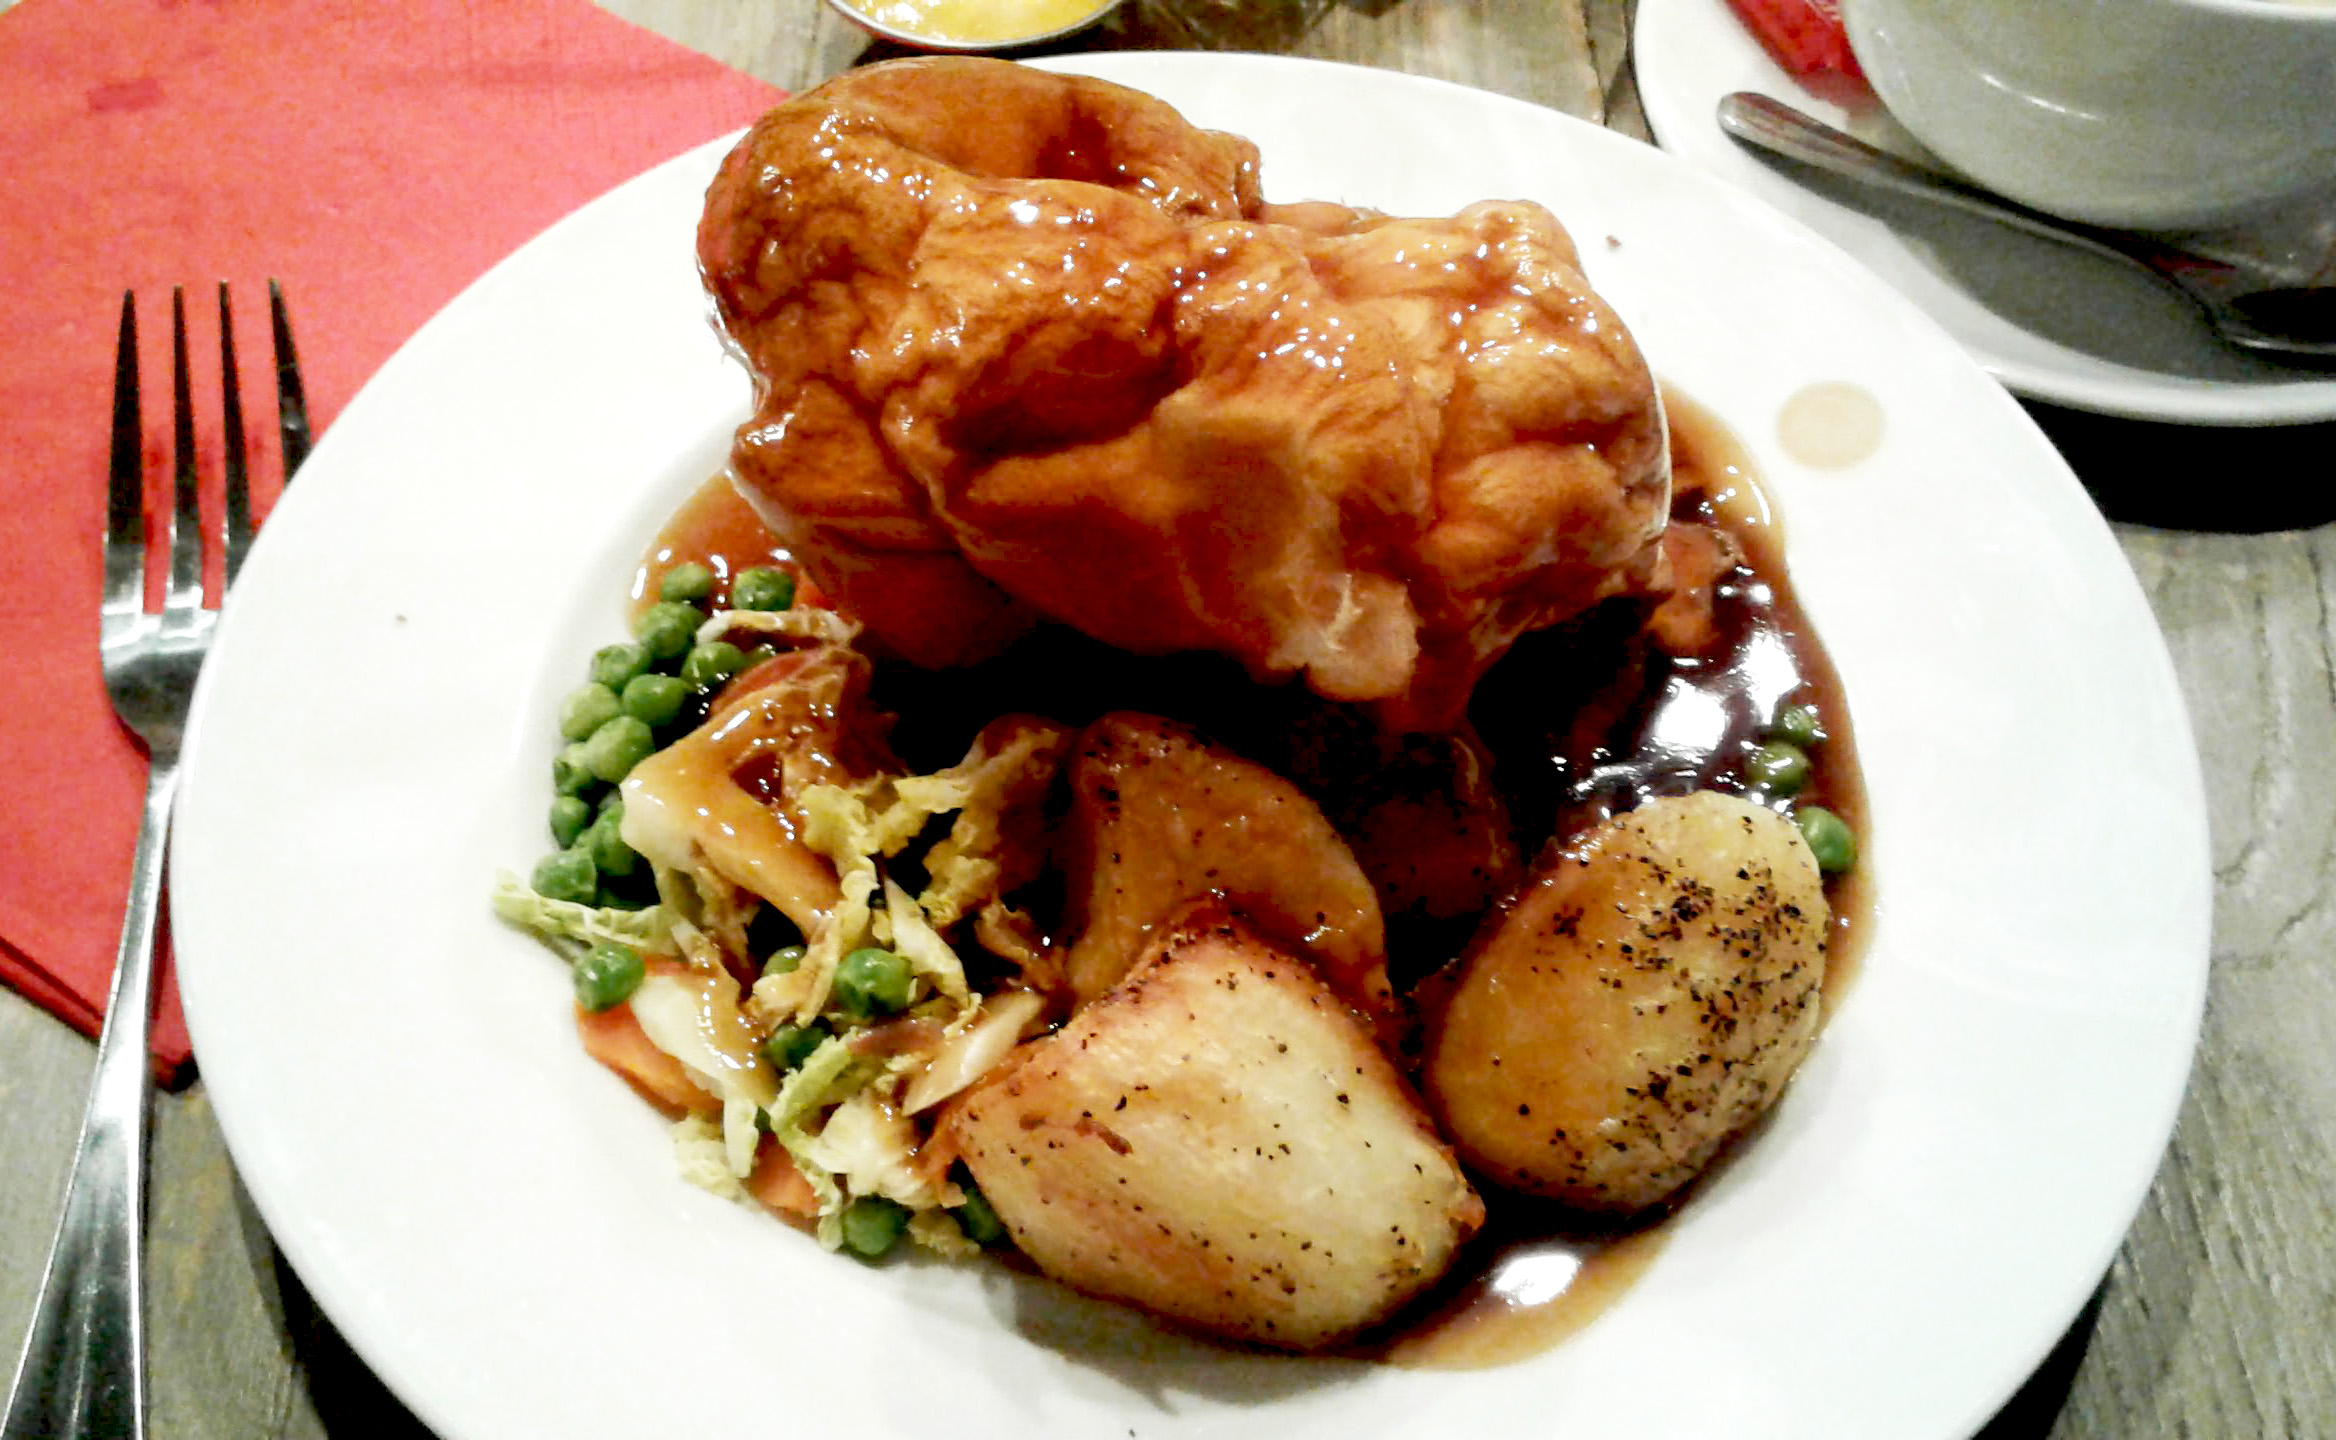 roast lunch